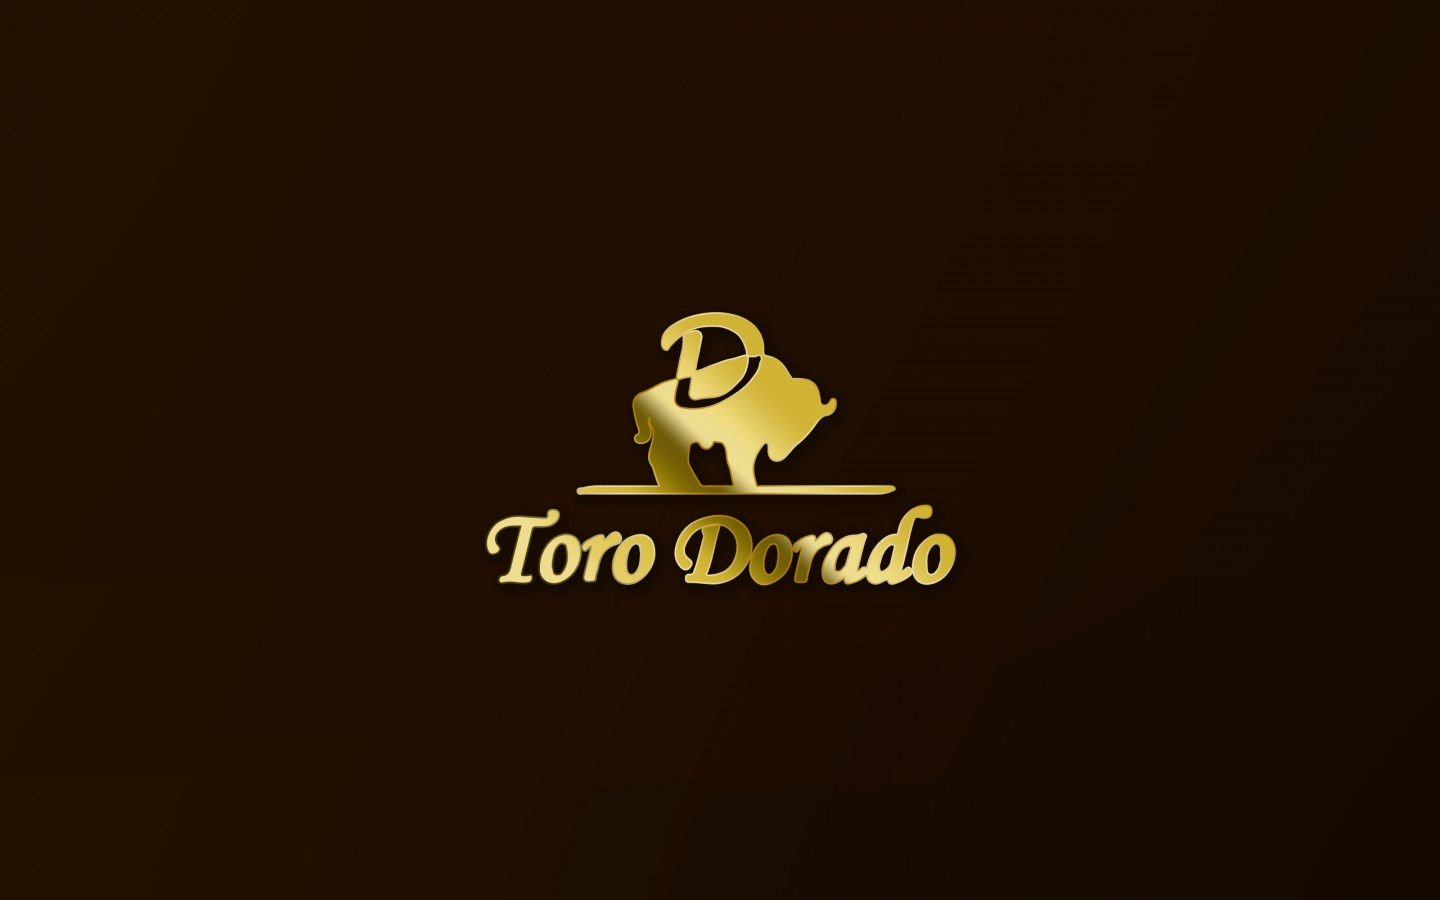 Toro Dorado Luxury Retreat Branding Project by Crevisio